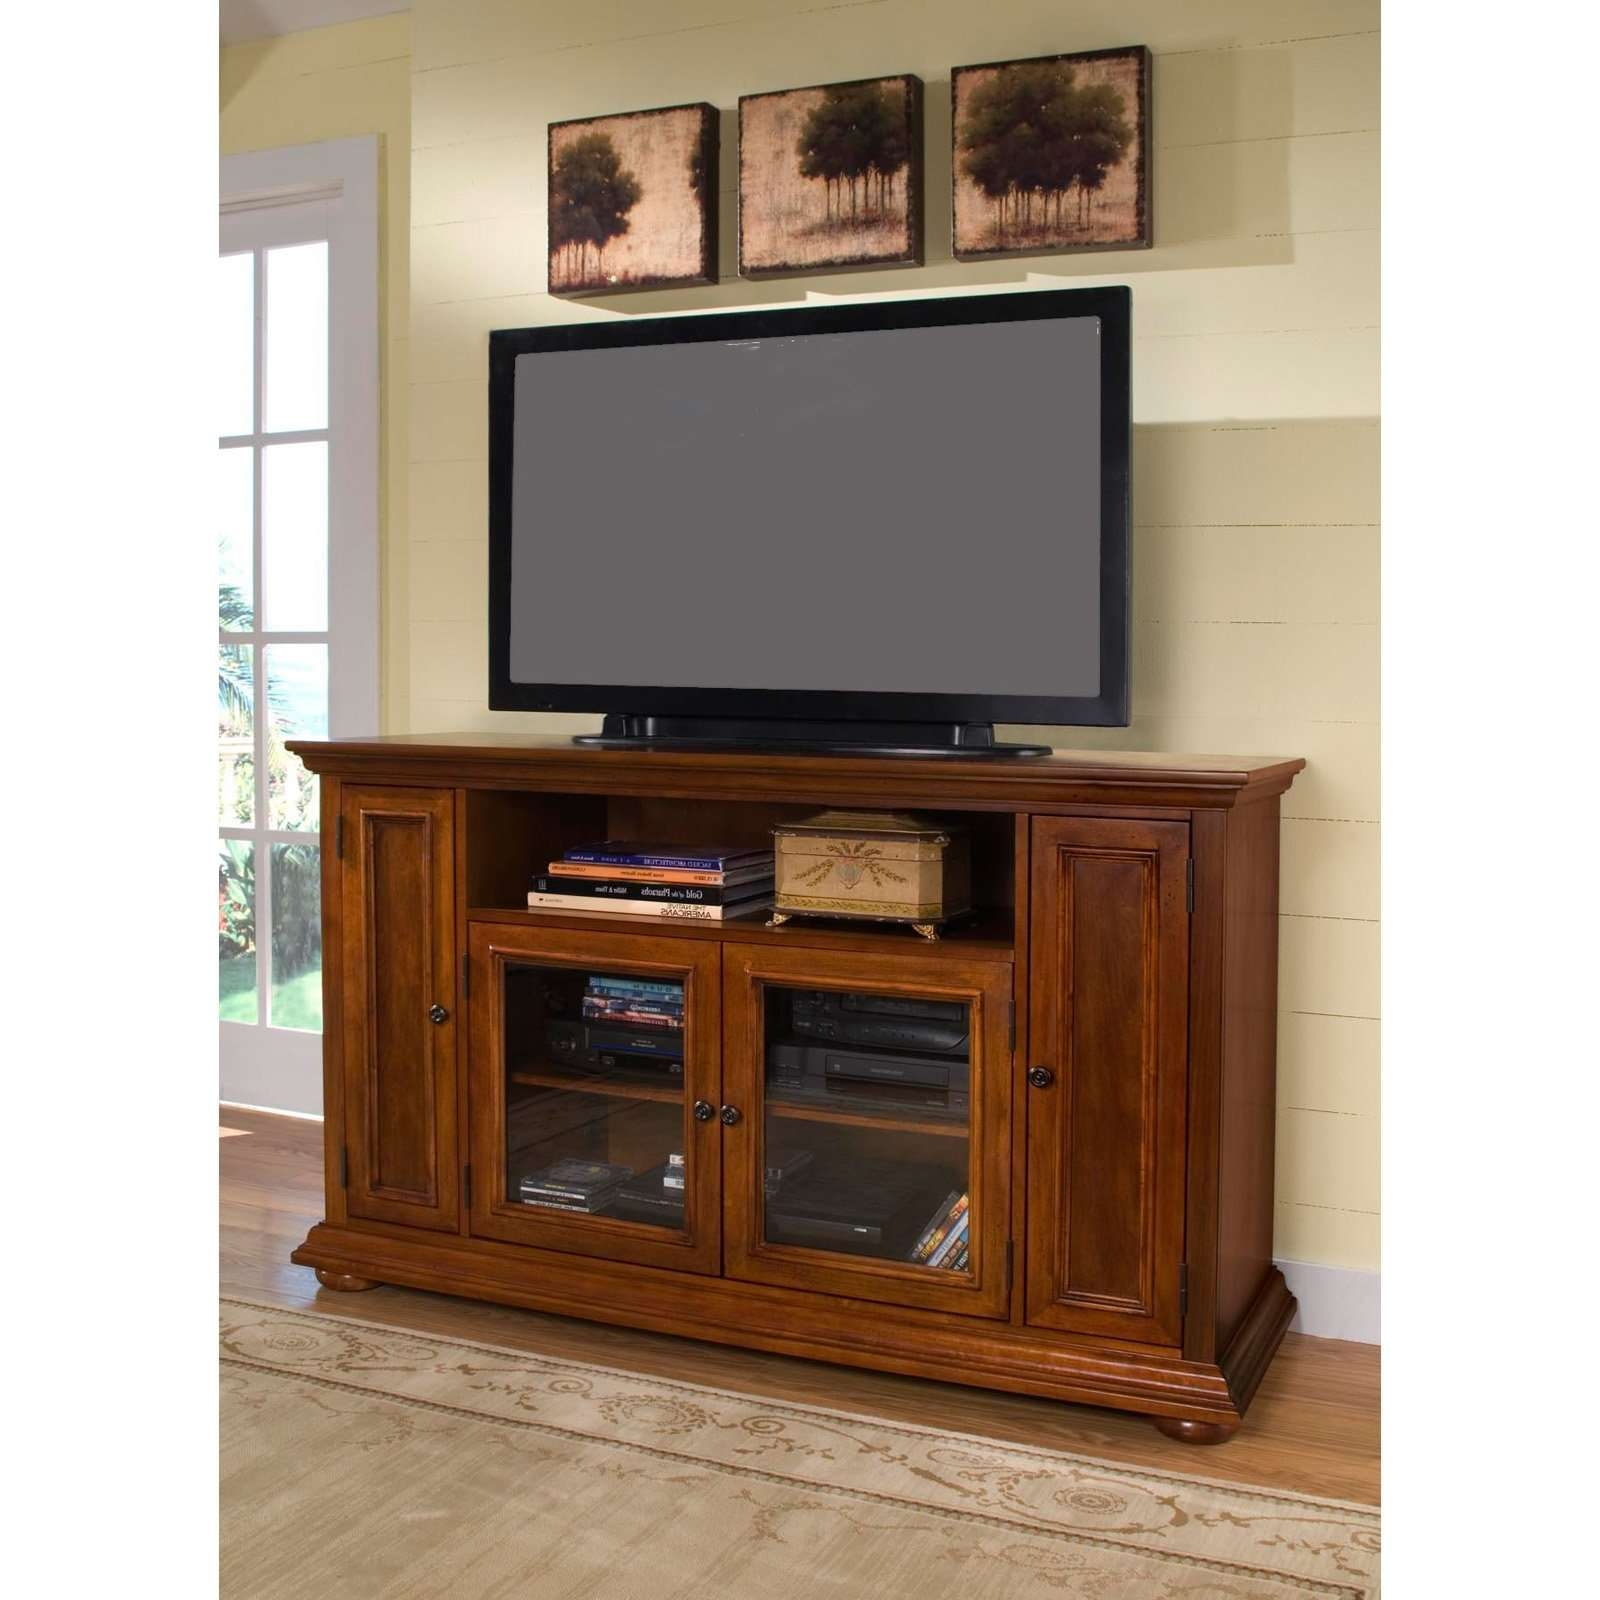 Rectangle Black Flat Screen Tv Over Brown Wooden Cabinet With Inside Glass Tv Cabinets With Doors (View 16 of 20)